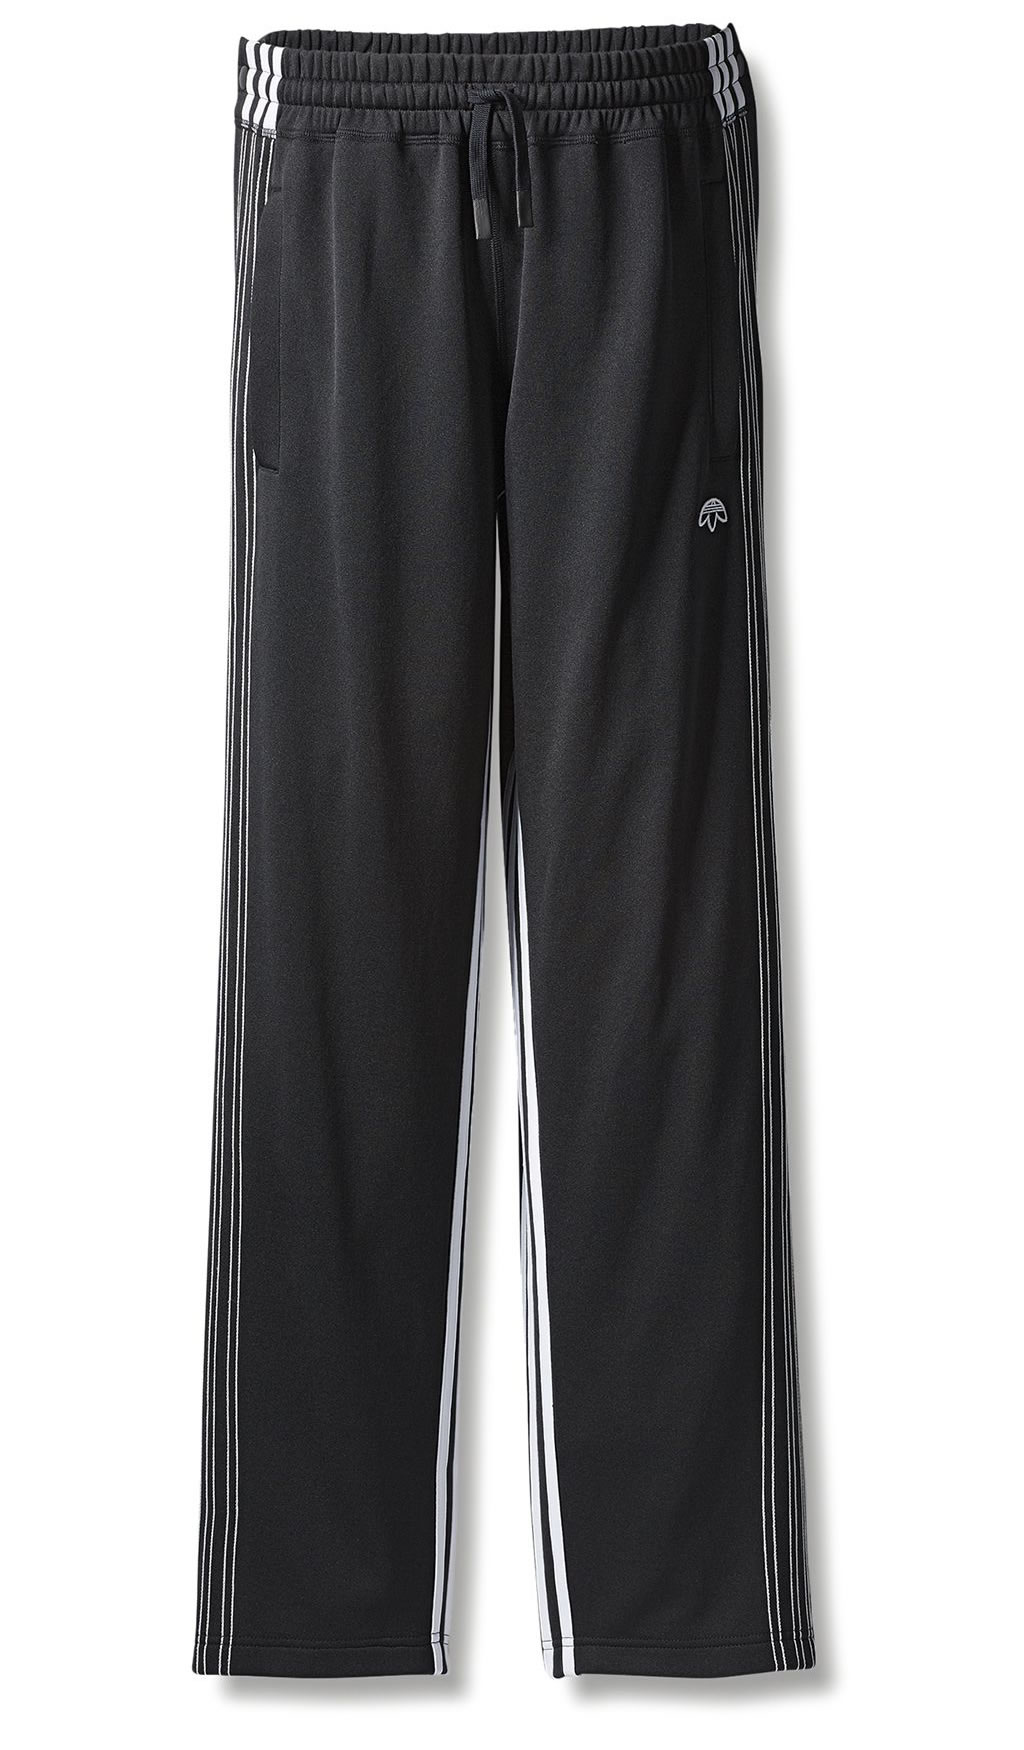 Black Alexander Wang Track Pants by Adidas Originals